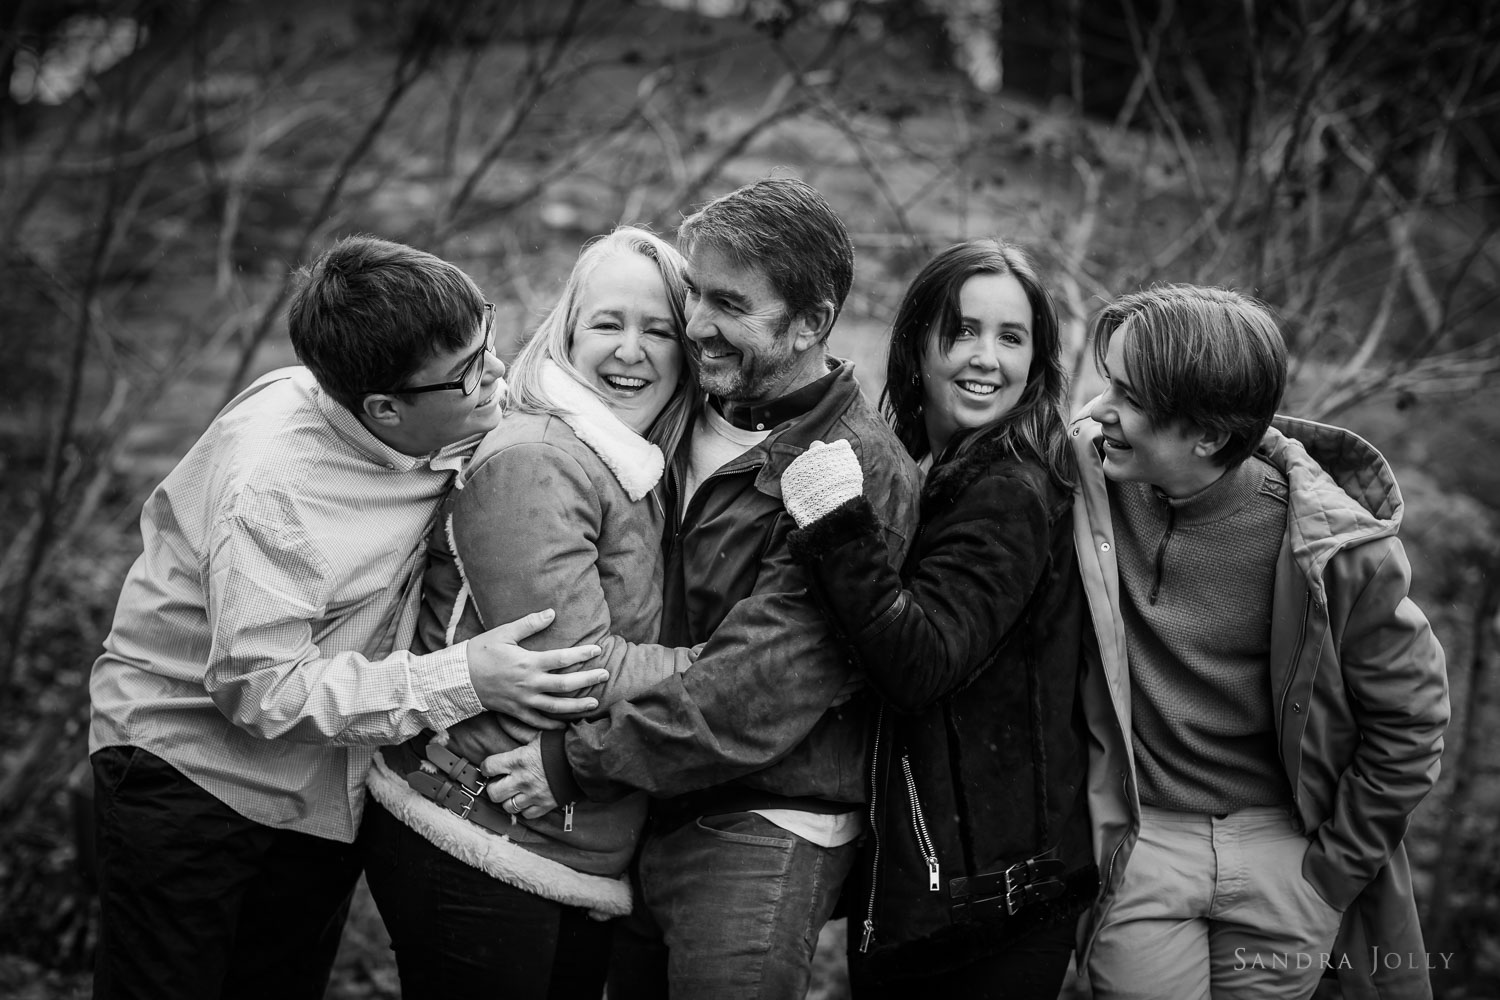 family-hugging-in-Danderyd-by-familjefotograf-Sandra-Jolly.jpg